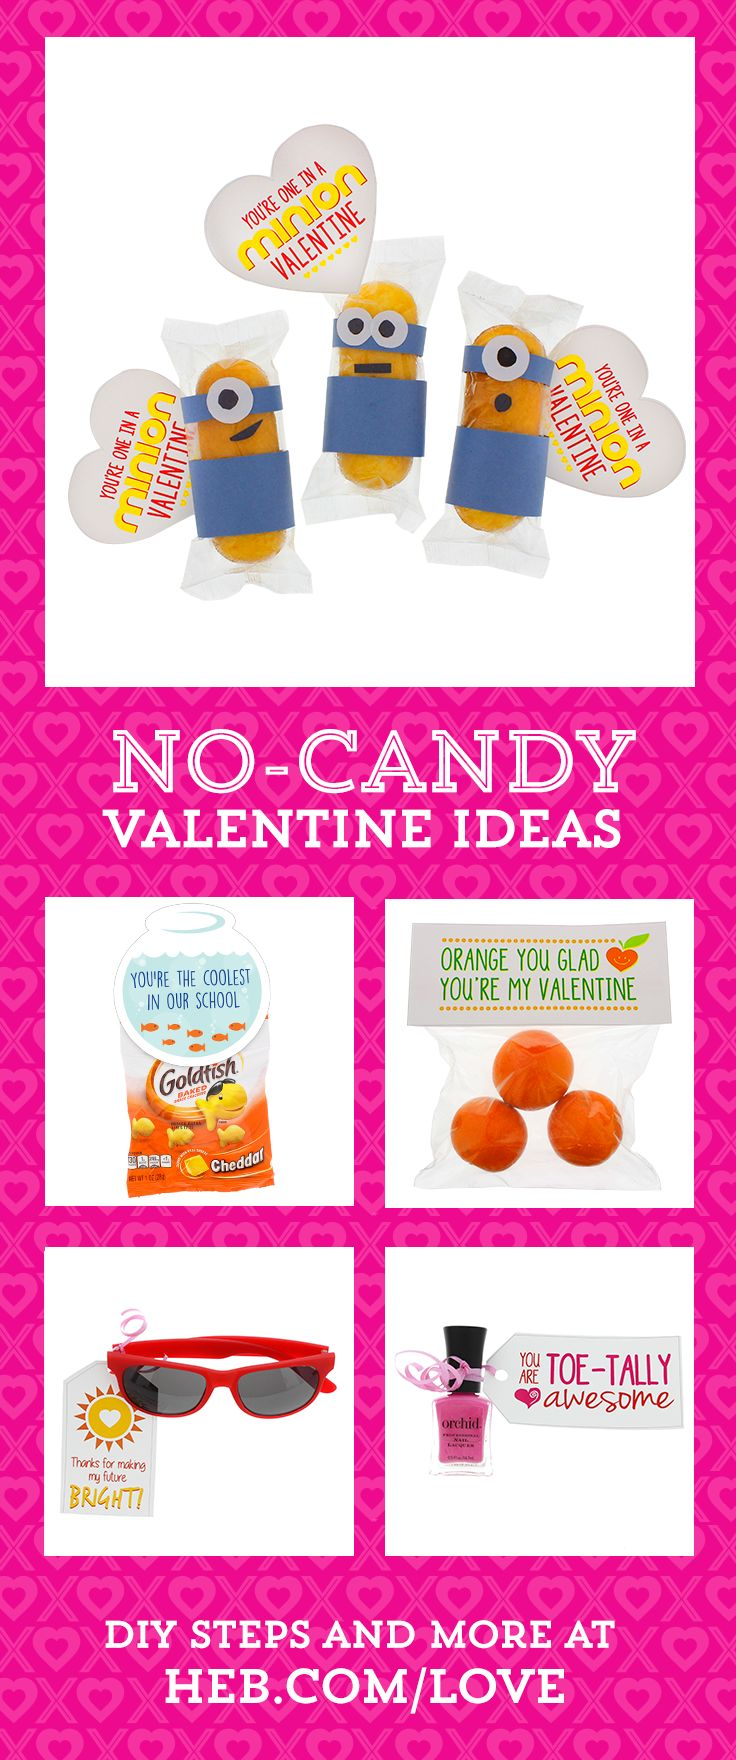 Looking for DIY Valentine gifts that don't involve tons of candy? Our No-Candy Valentines projects have ideas for a classroom exchange, teacher gifts and even Valentines for your crush. Plus, get printable tags! How easy is that?